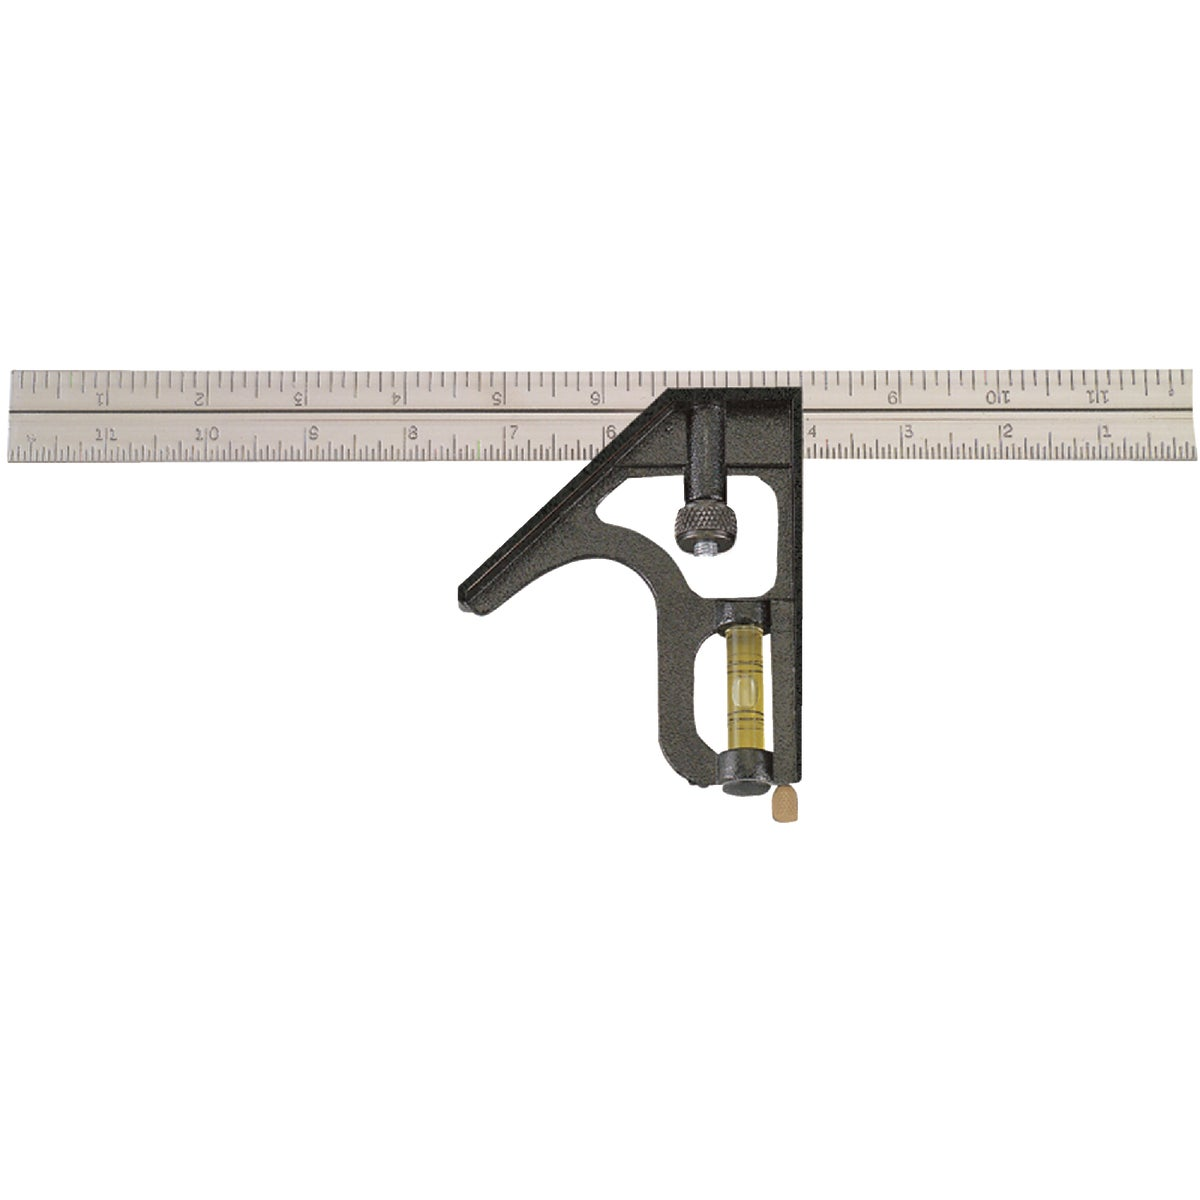 "12"" COMBO SQUARE - 400 by Johnson Level & Tool"